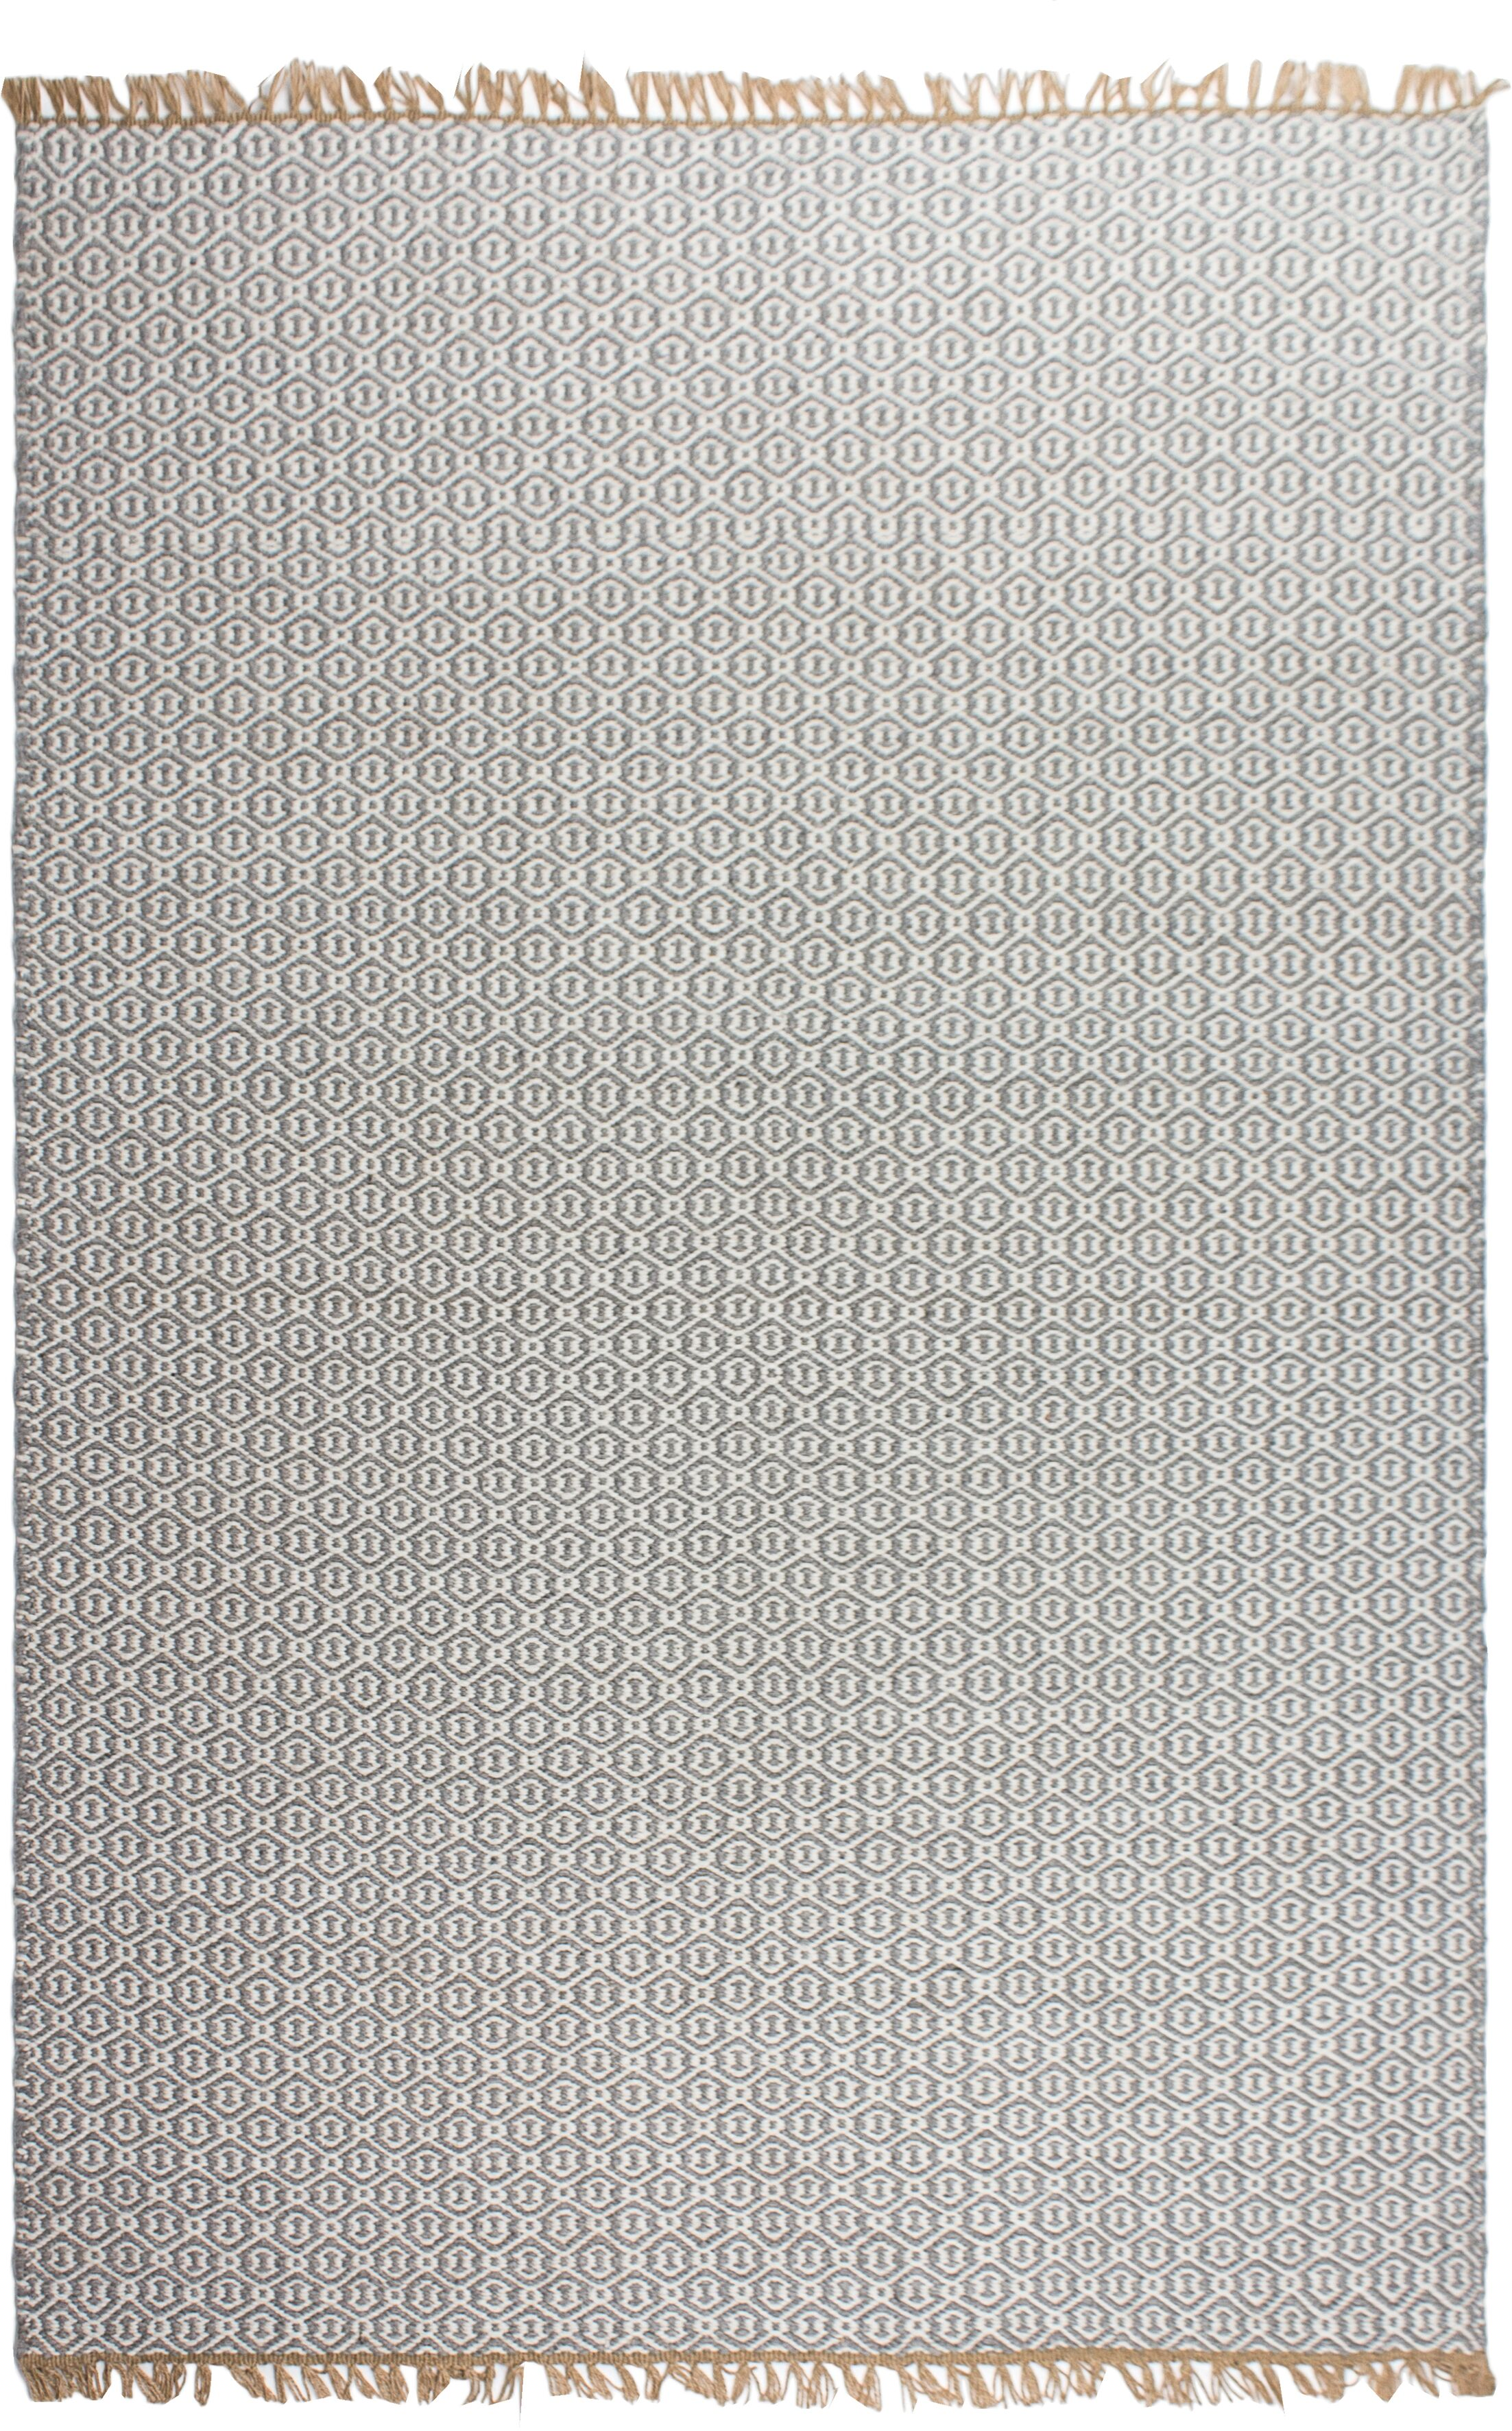 Estate Hand-Woven Gray Indoor/Outdoor Area Rug Rug Size: 6' x 9'